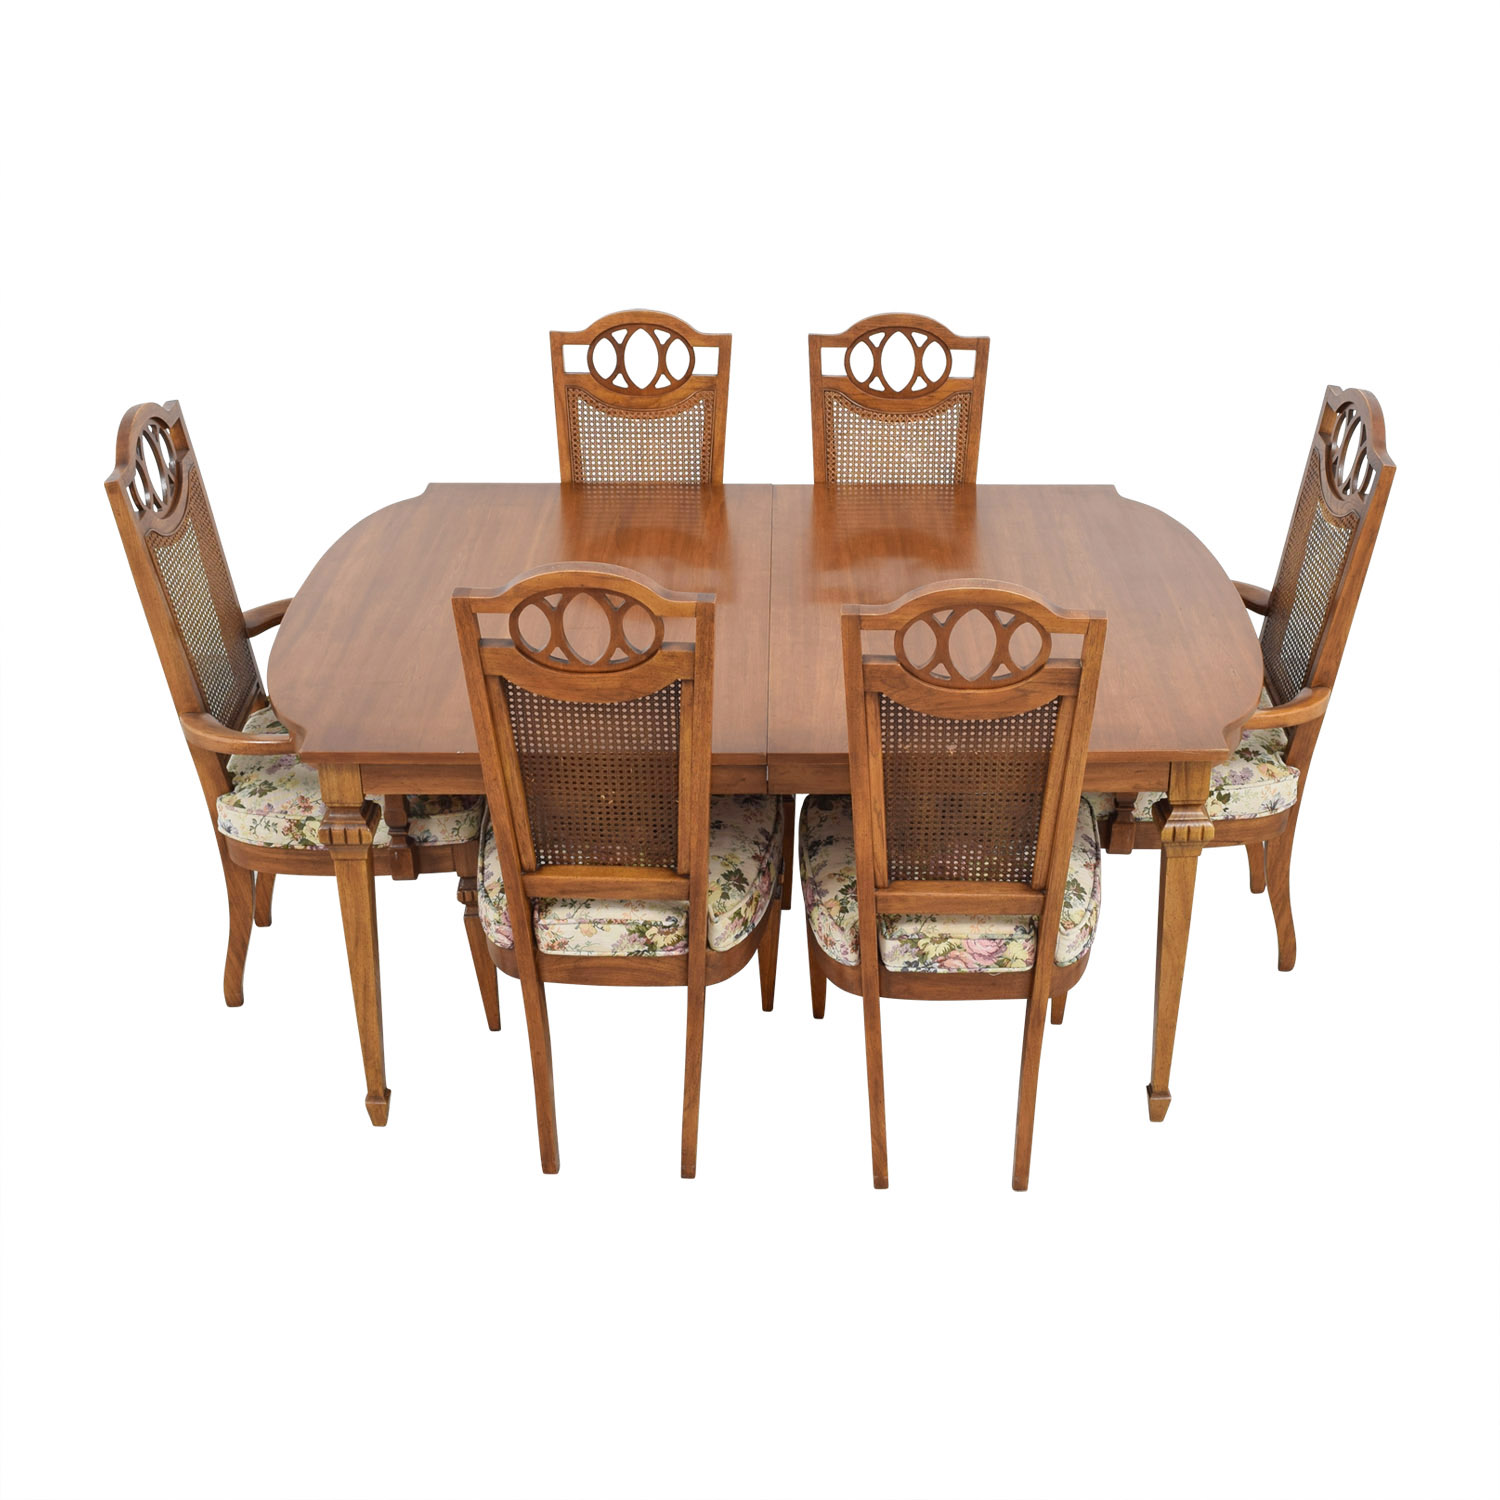 Italian Dining Set with Leaf Extensions and Floral Upholstered Chairs dimensions